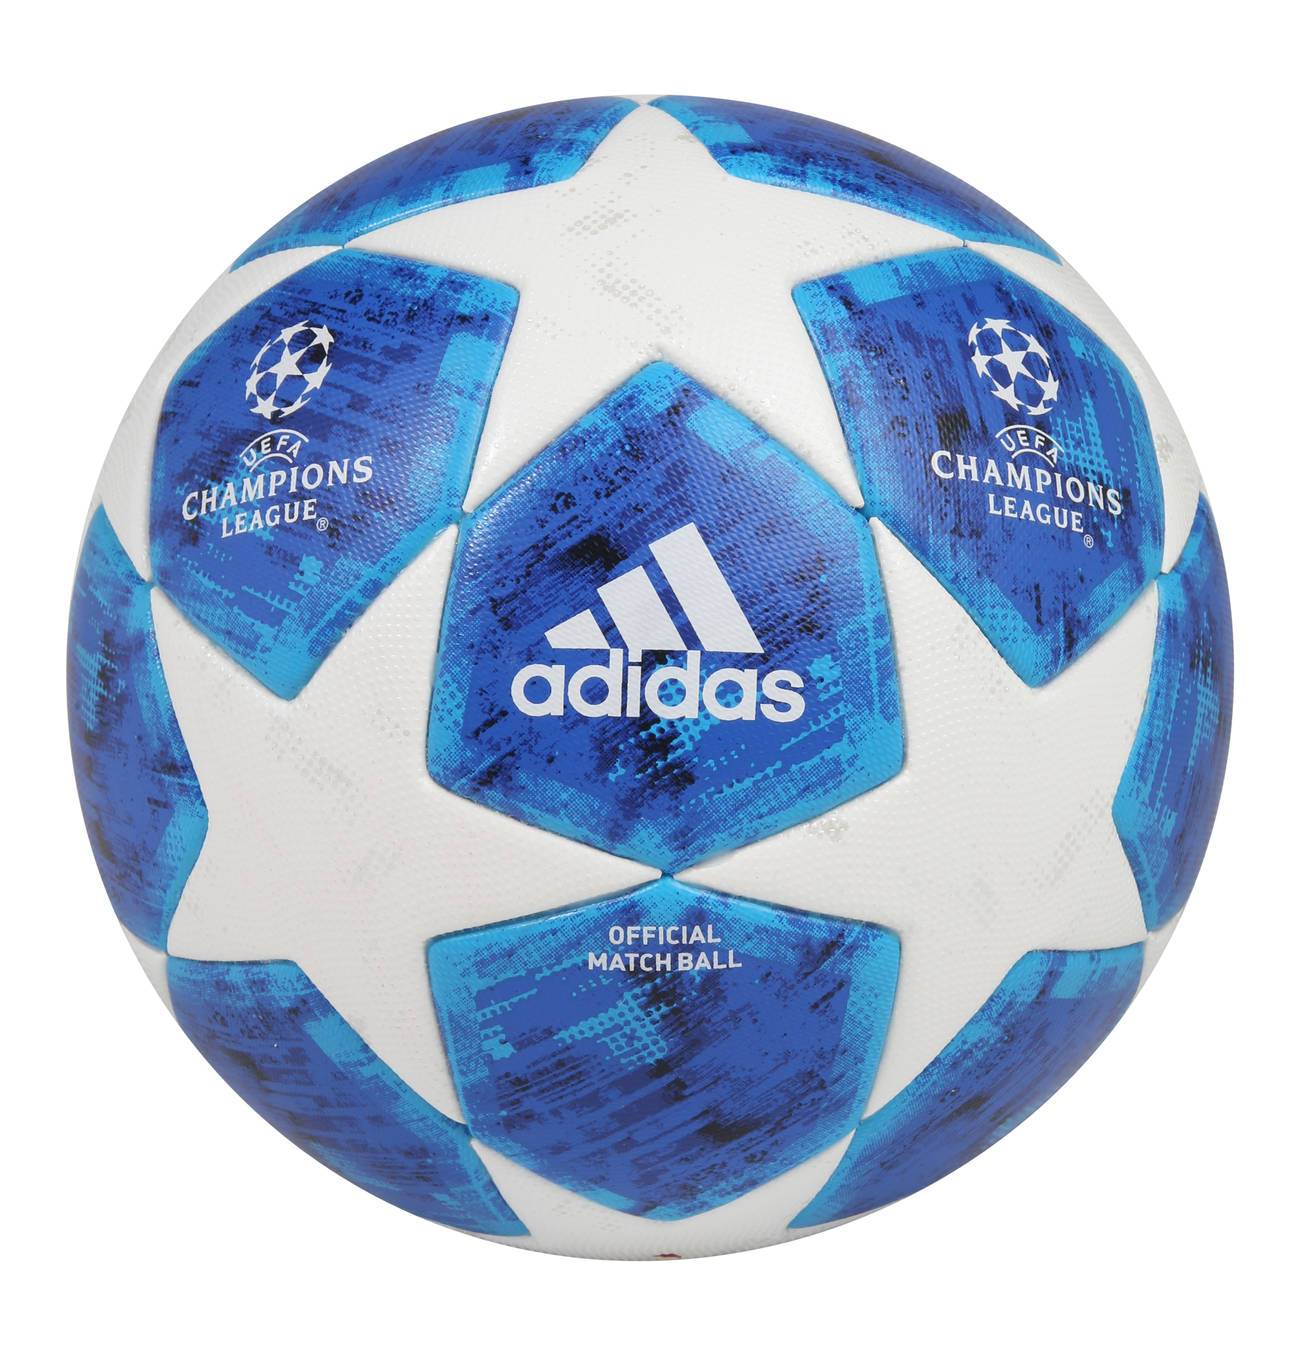 Adidas Fussball Matchball Champions League 2018 2019